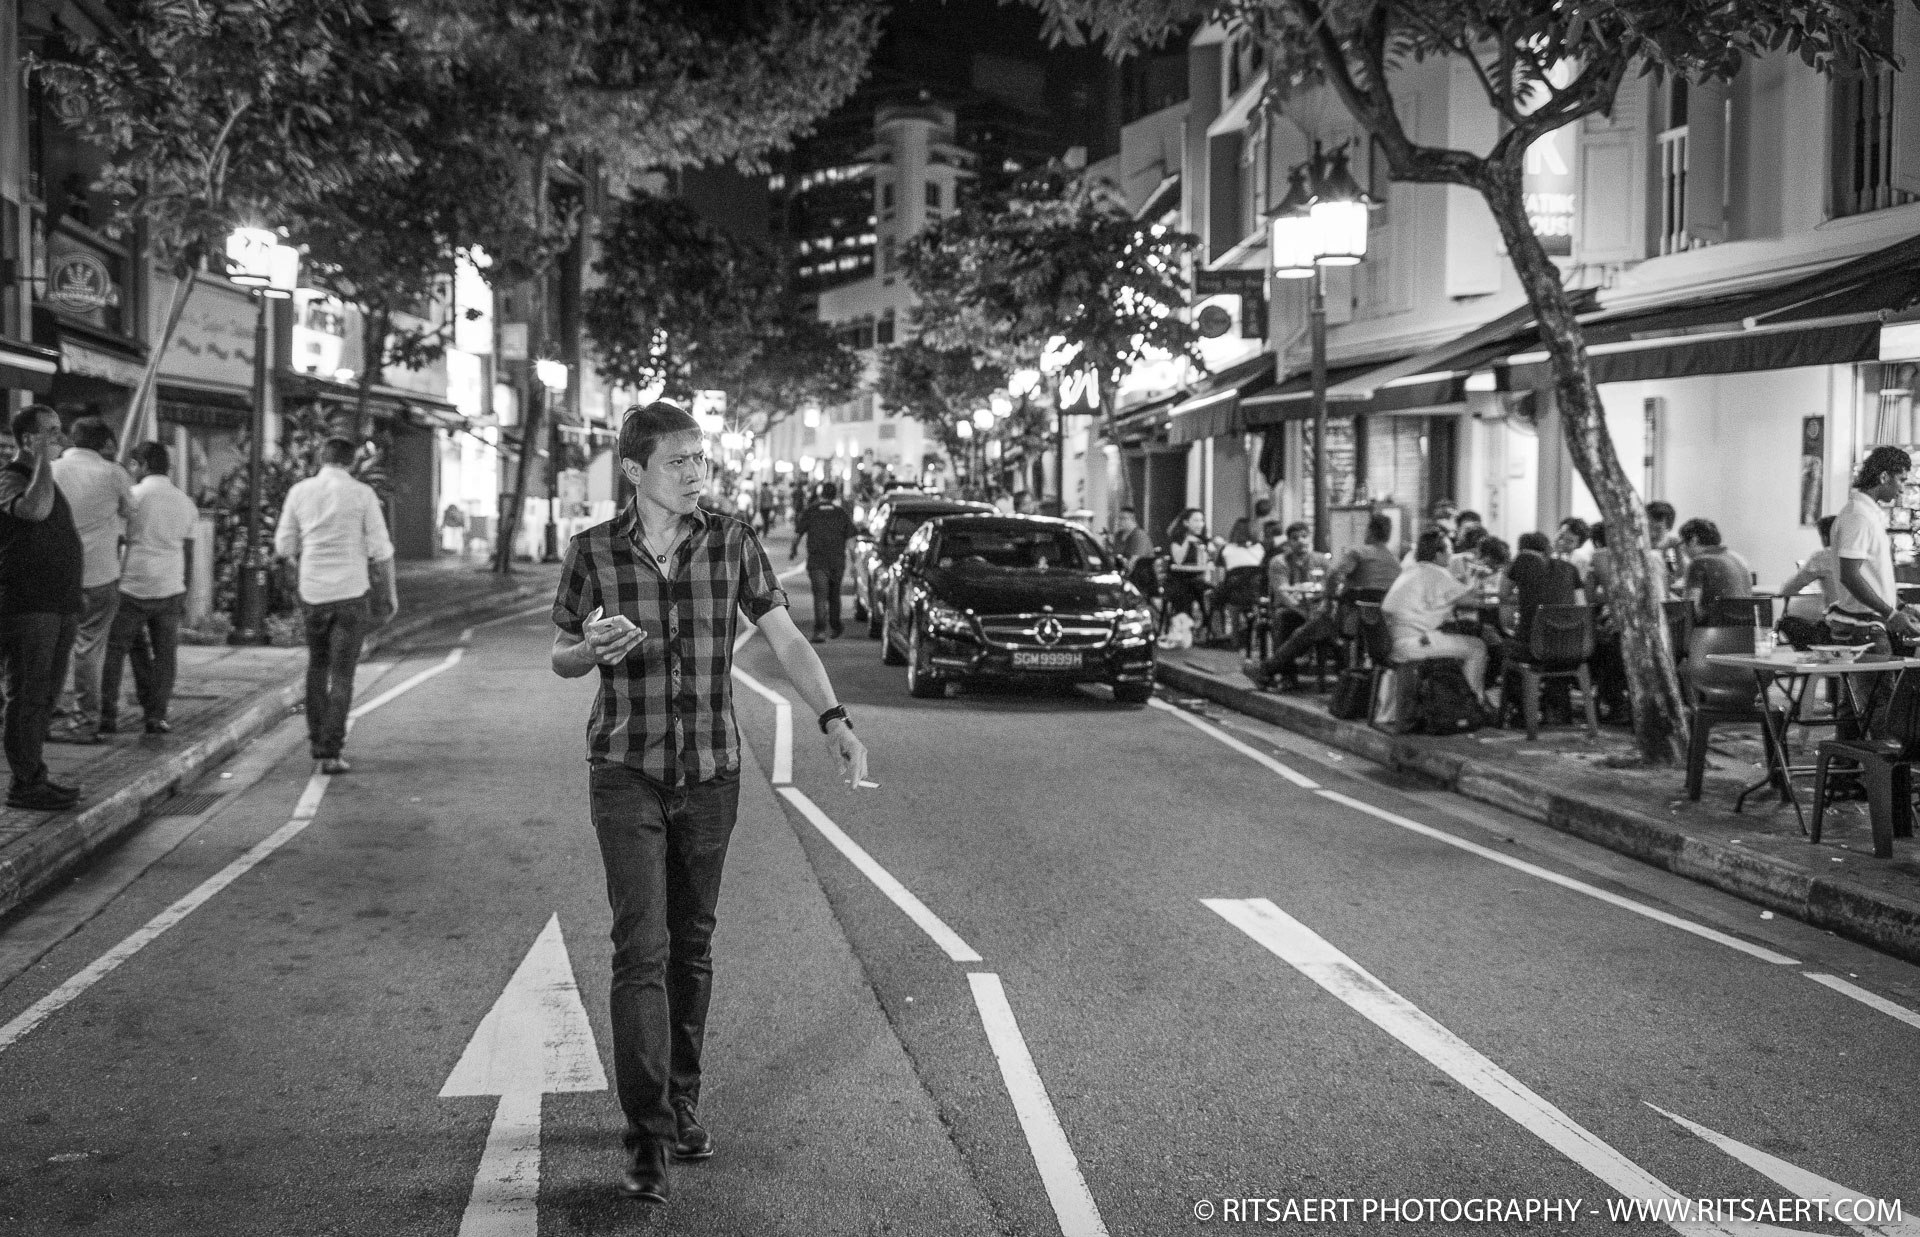 Nightlife - Singapore